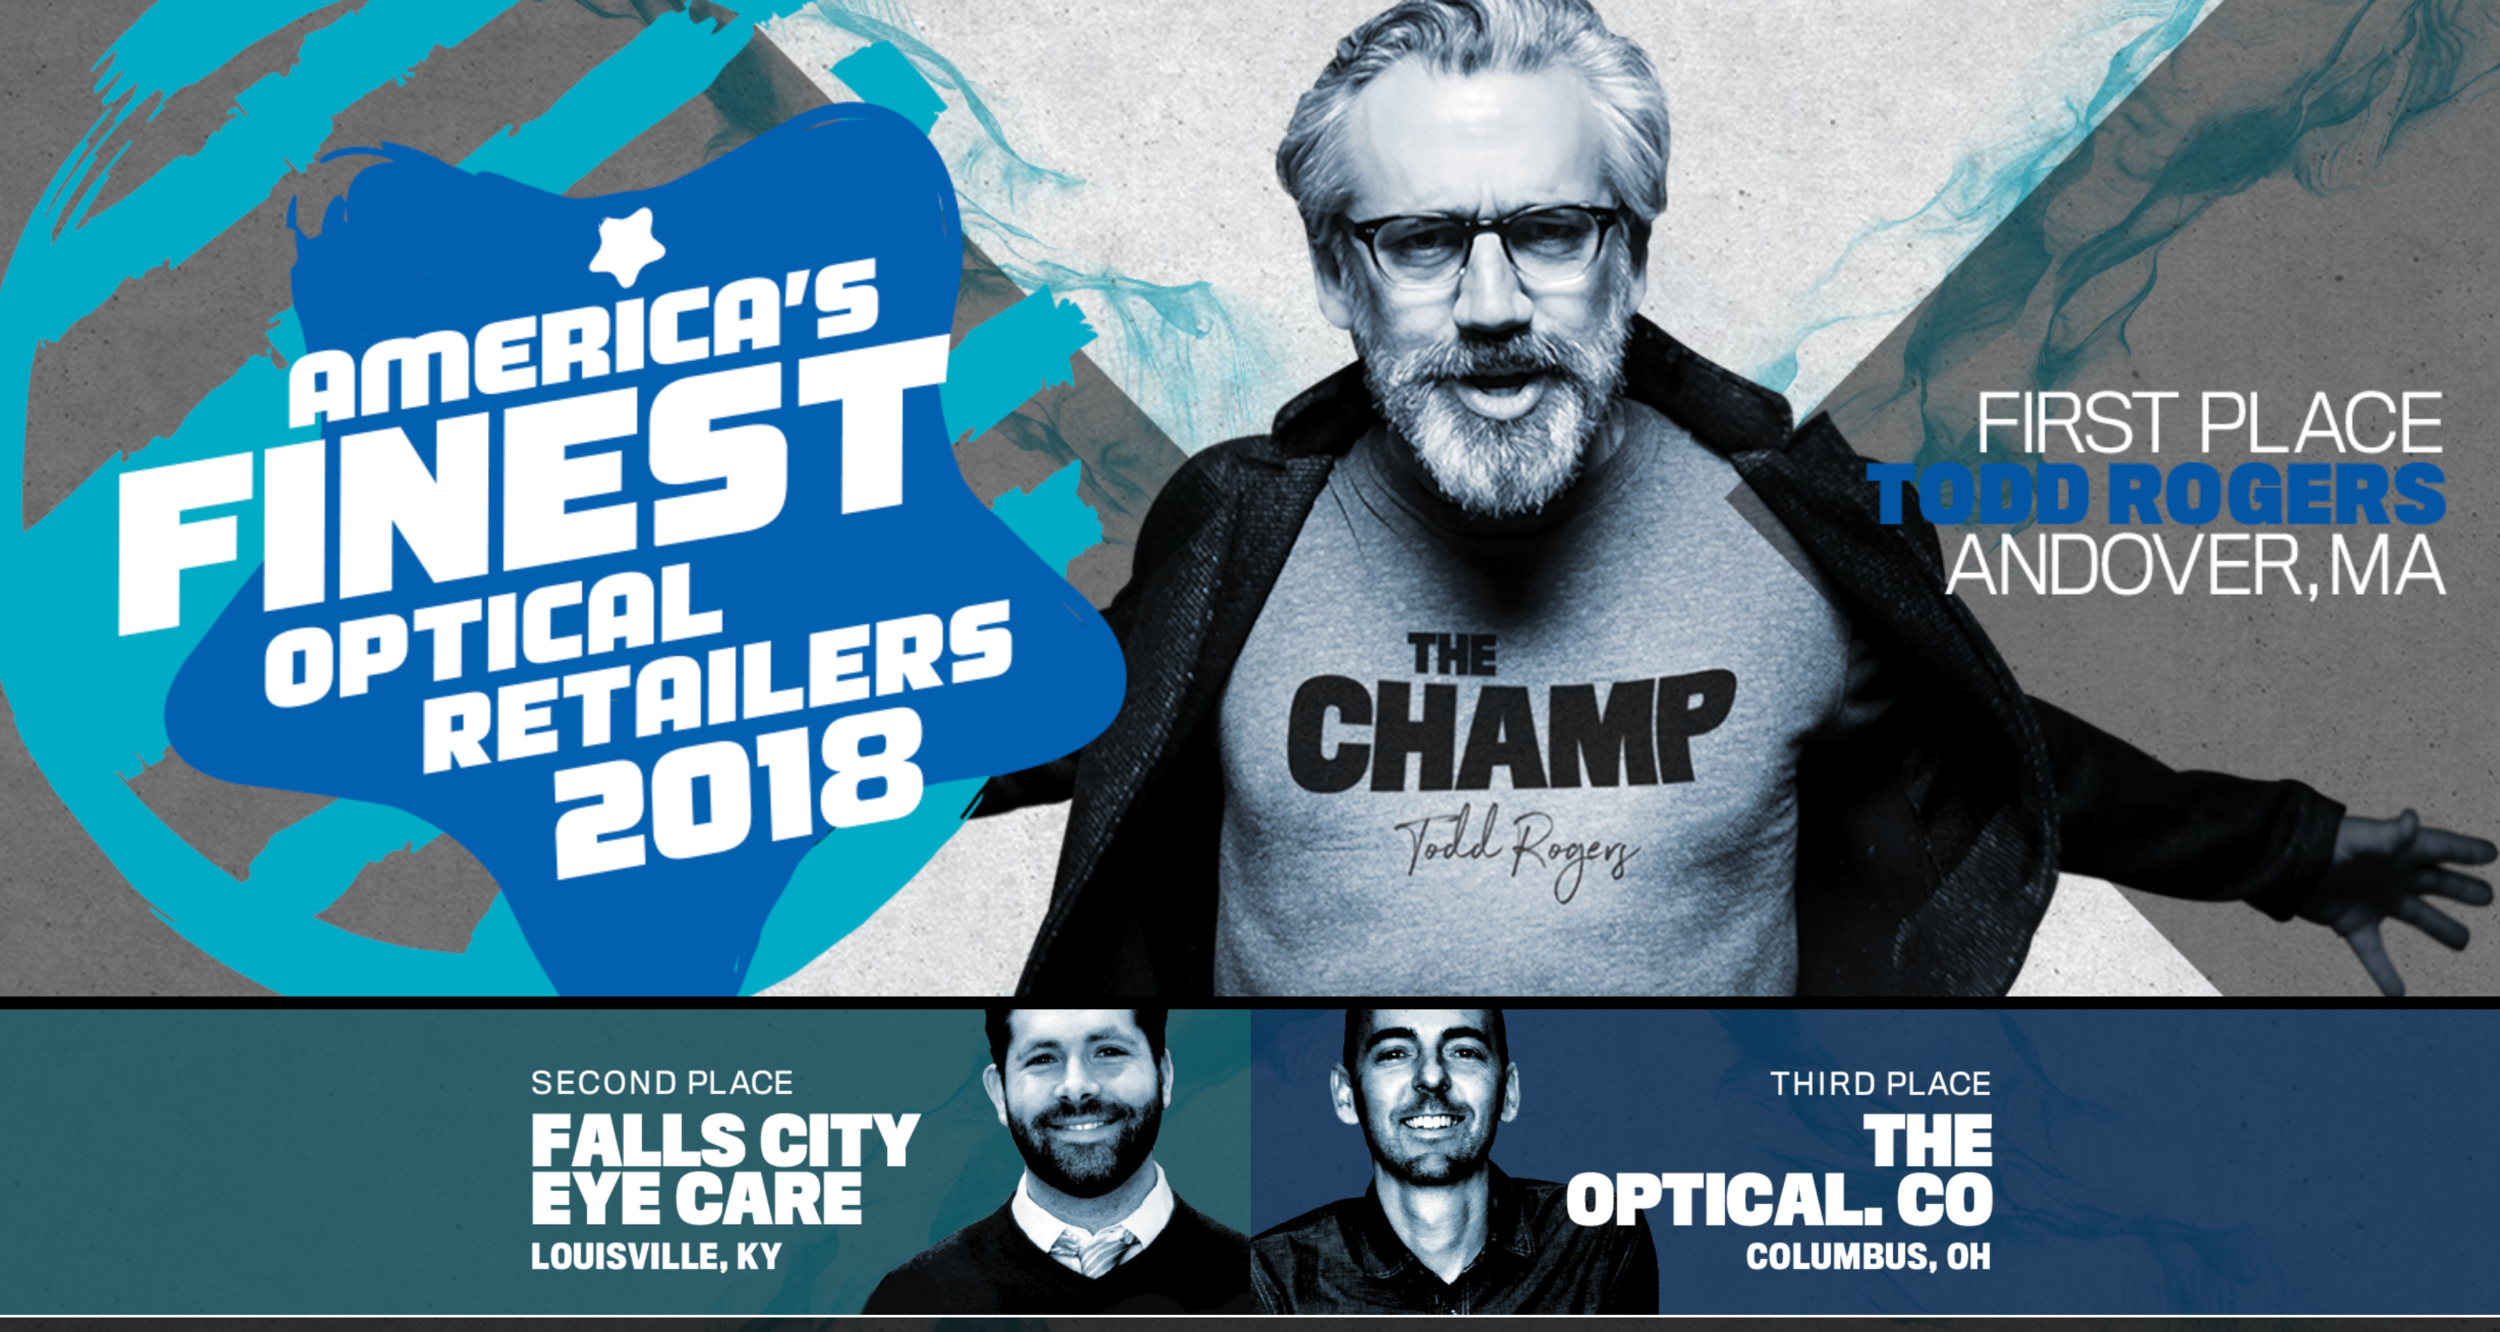 Americas Finest Optical Retailers The Optical Co Columbus Ohio.png